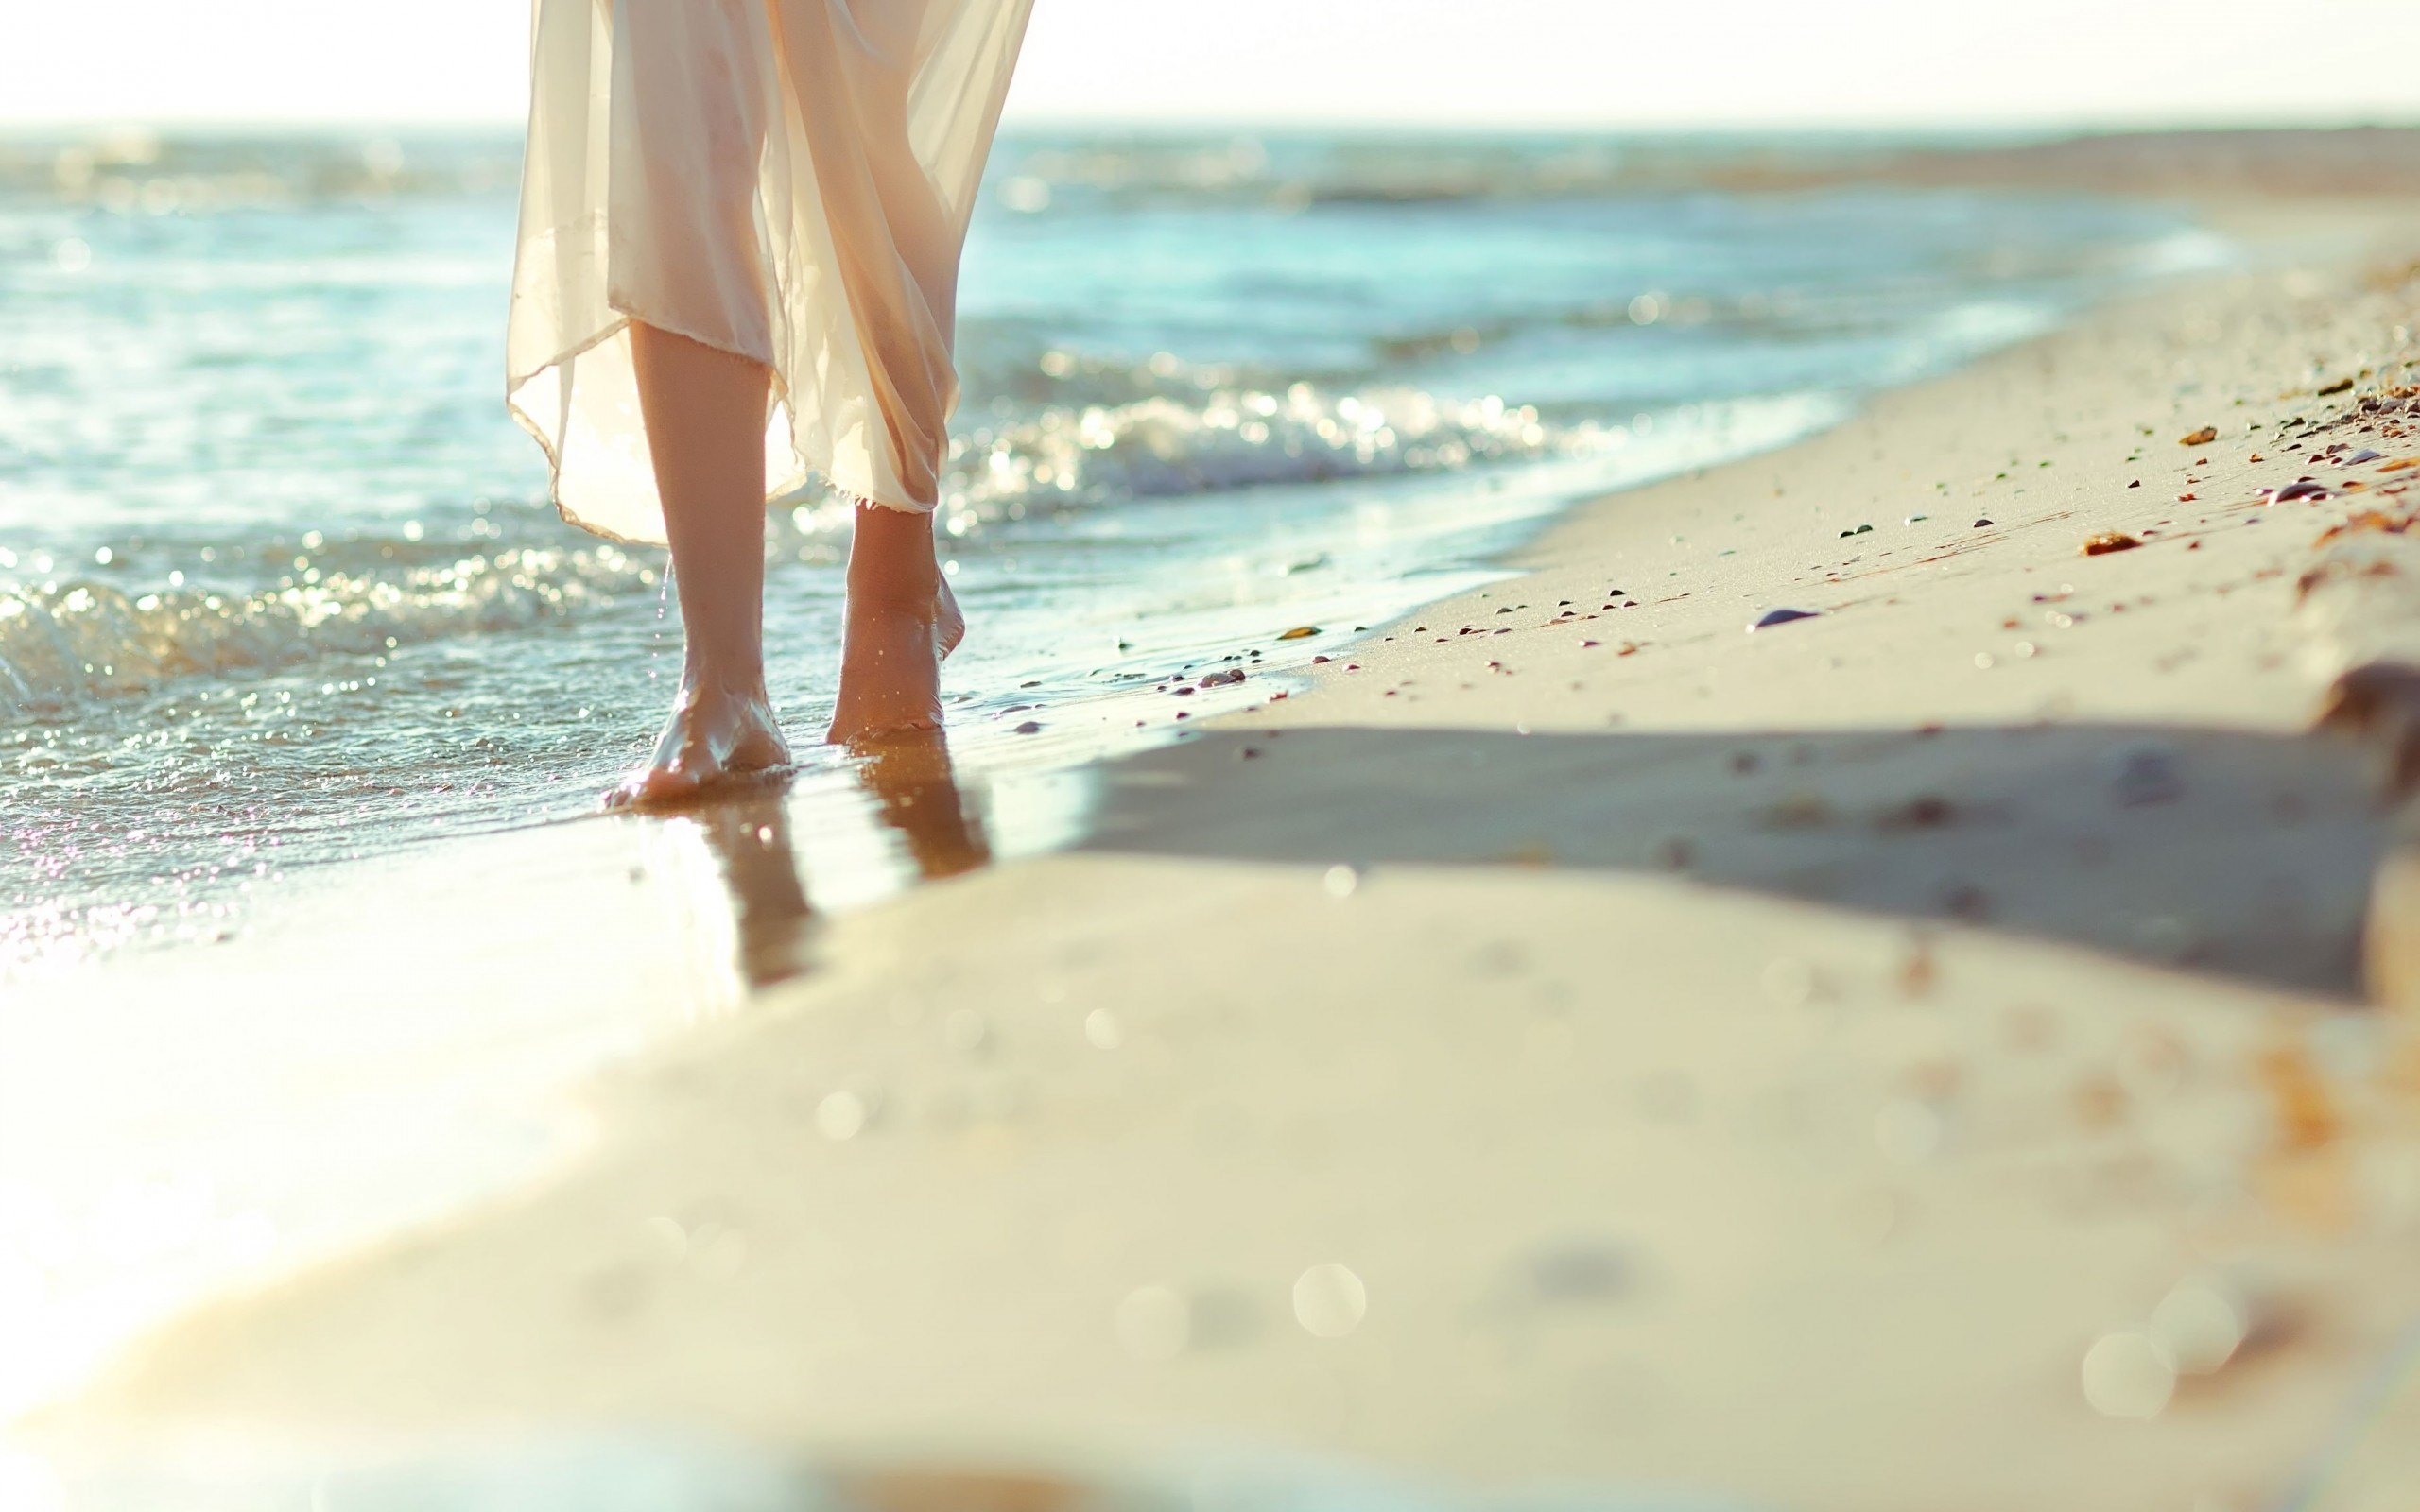 Mood Girl Legs Sand Beach Sea Waves